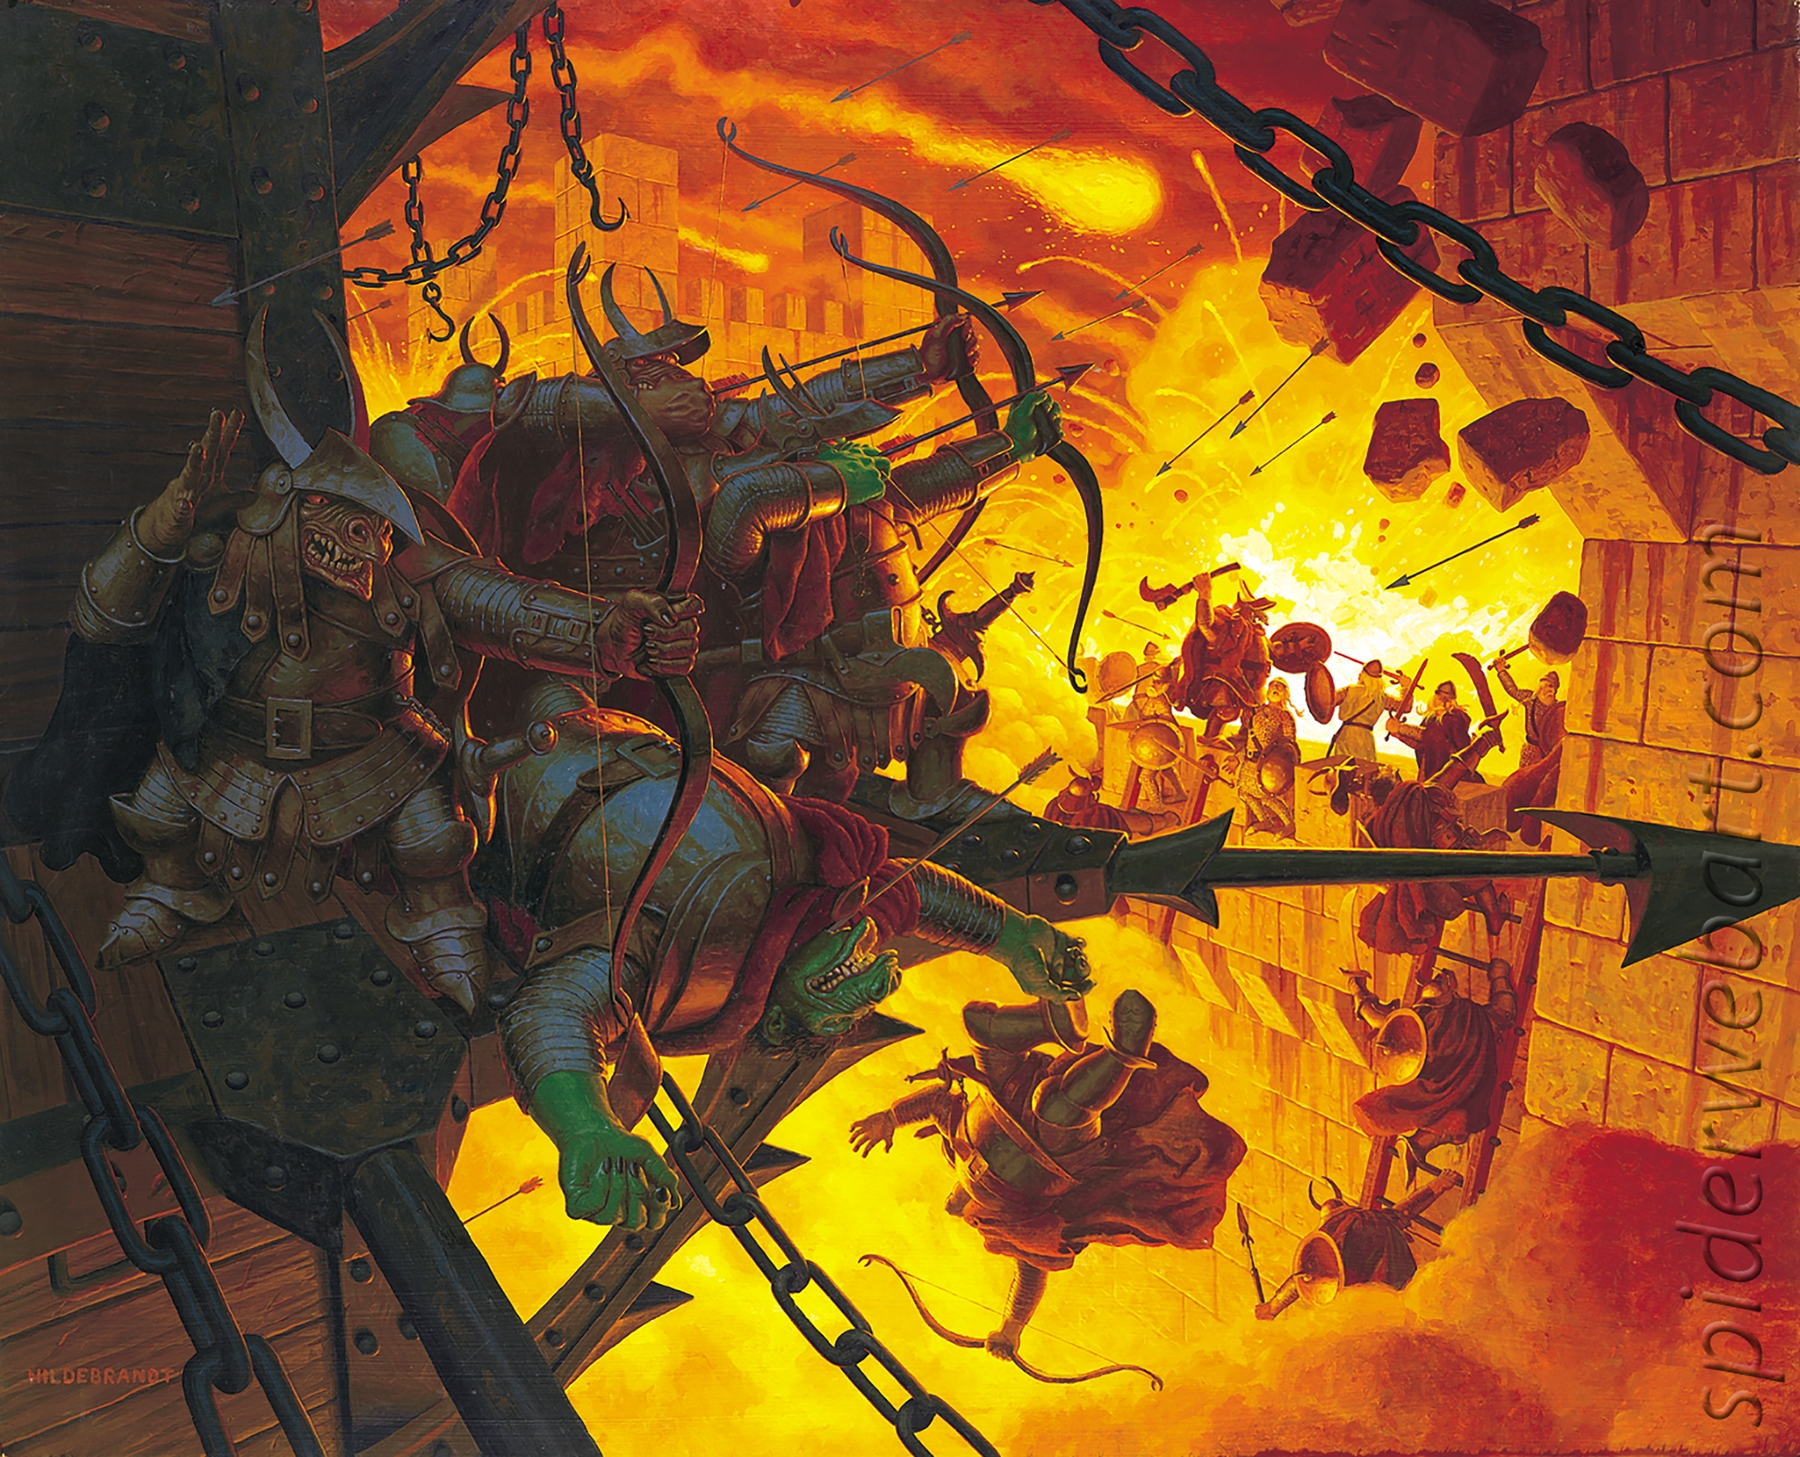 Lord of the Rings: The Siege of Minas Tirith Comic Art